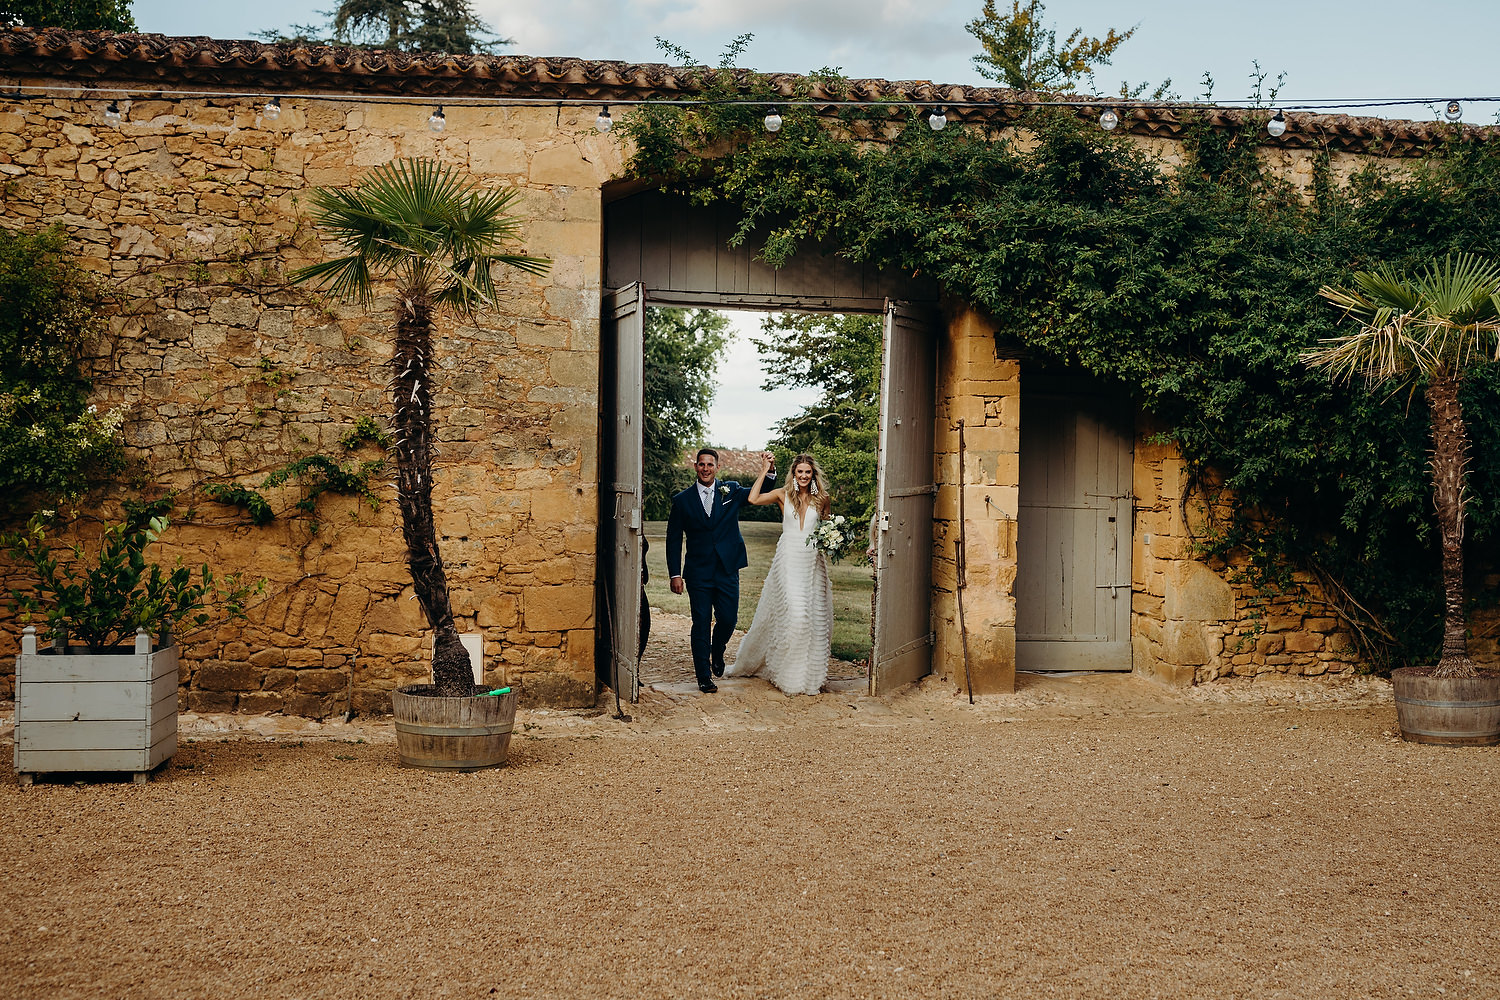 Bride and groom making entrance